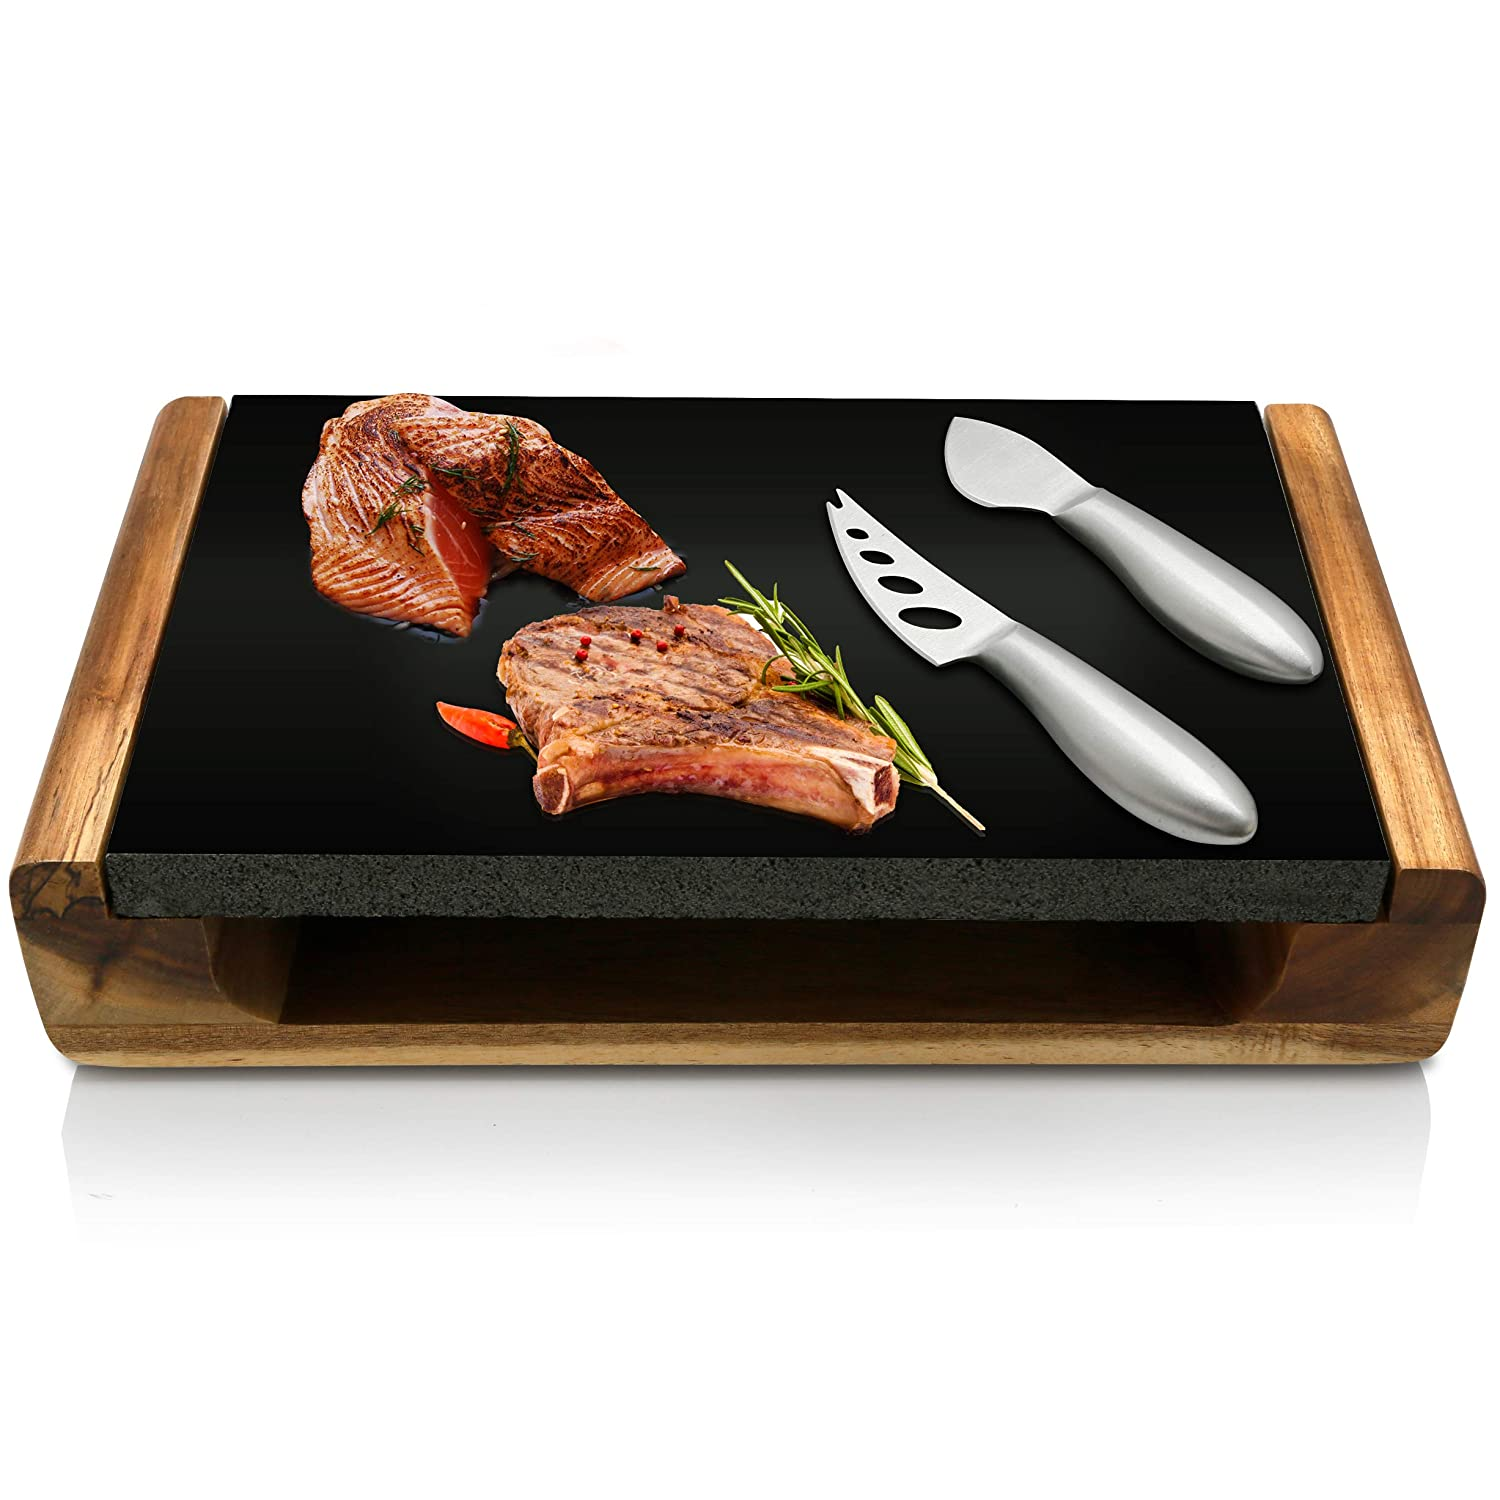 Cooking Lava Stone Grill Platter - Grilling Cook Stones Slab - Natural Grilled Stone Rock Hot Tray Set with Stainless Steel Metal Knives Kit for Cutting and Serving Food - NutriChef PKLVST10